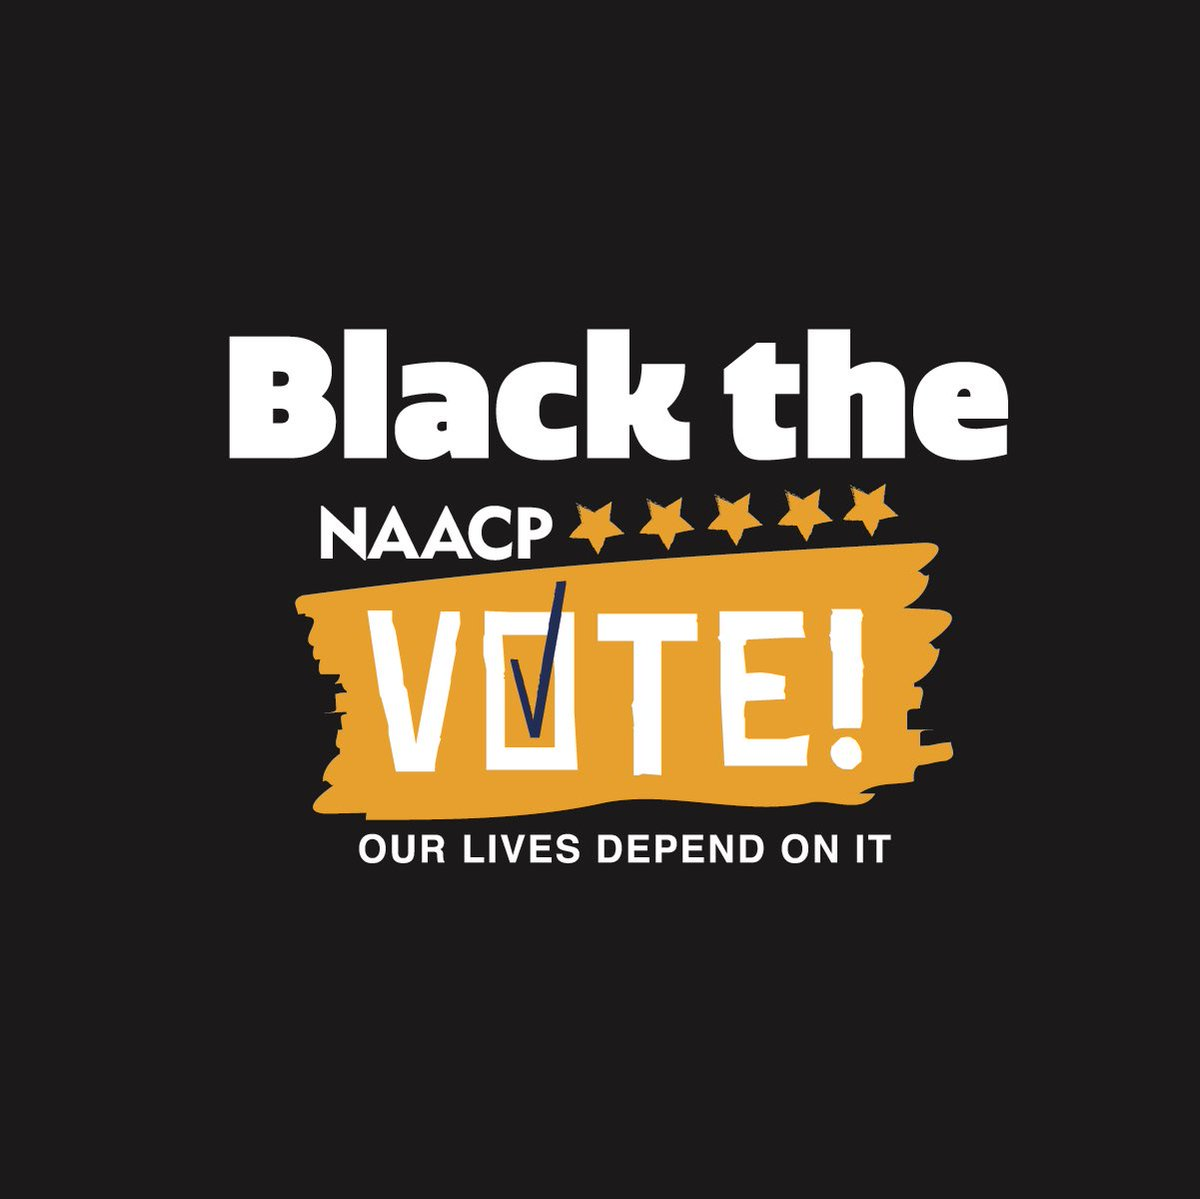 #ElectionDay is around the corner and EVERY VOTE COUNTS! #CommitToVote, let your voice be heard and counted. #BlackTheVote https://t.co/iY8YSsLhh2